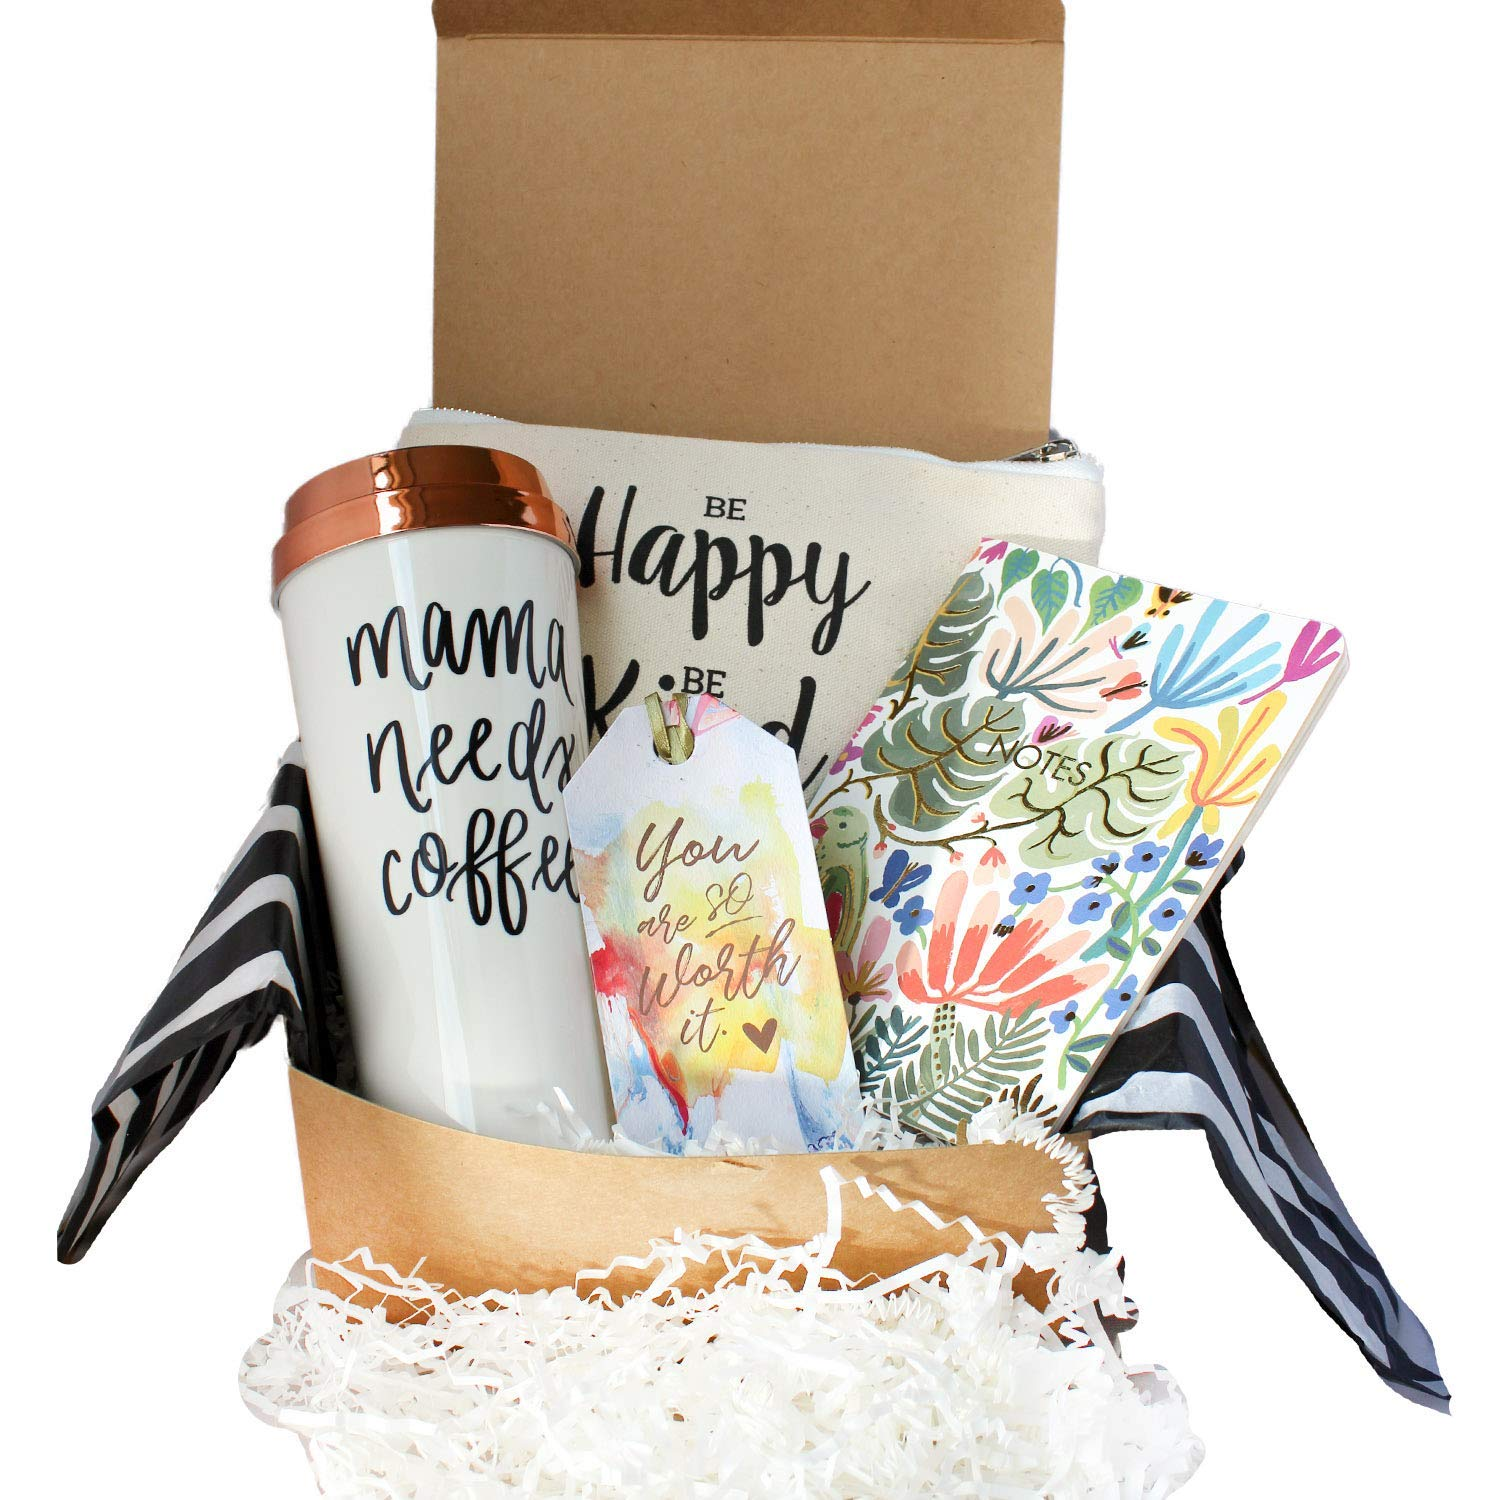 coffee gift set for mom